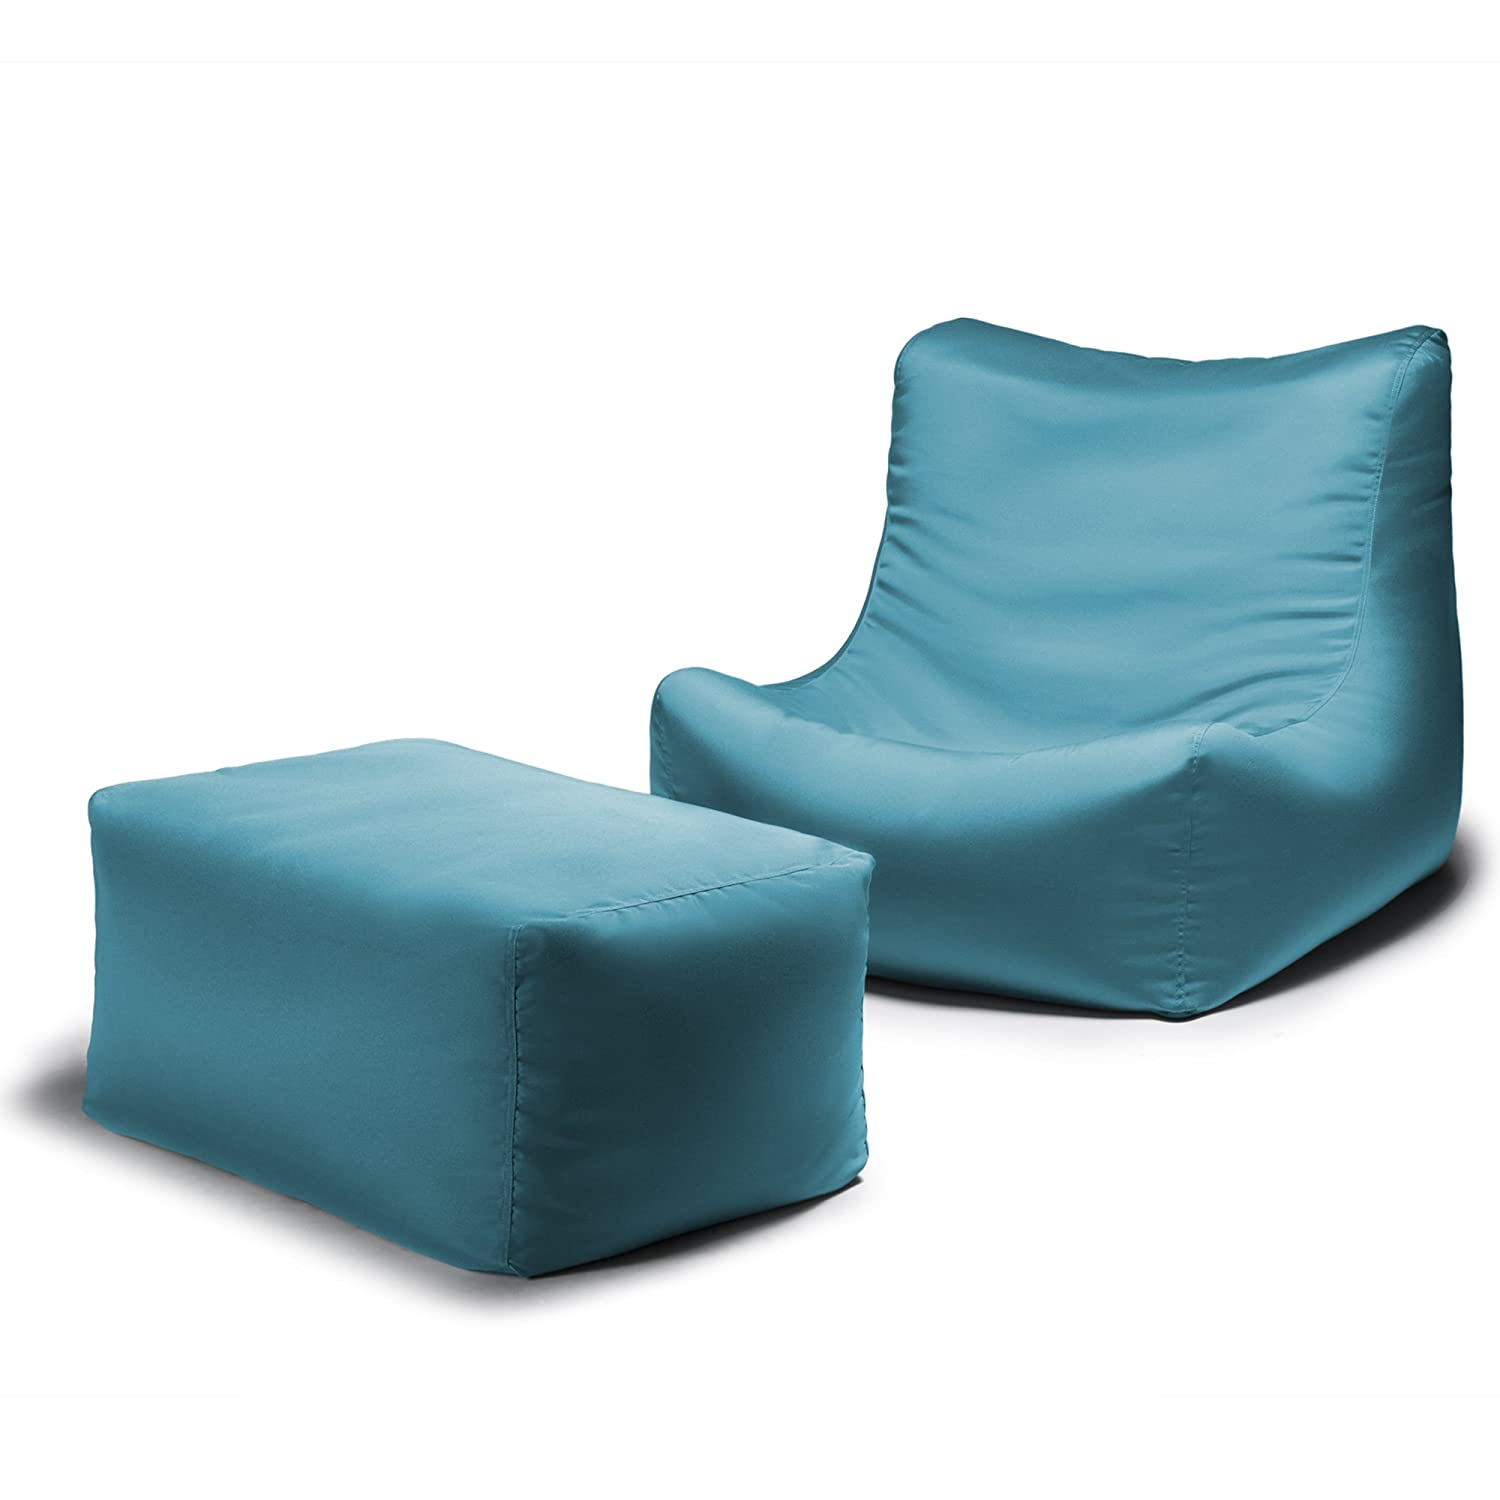 Merveilleux Amazon.com : Jaxx Ponce Outdoor Bean Bag Lounge Chair U0026 Leon Ottoman,  Lagoon : Garden U0026 Outdoor